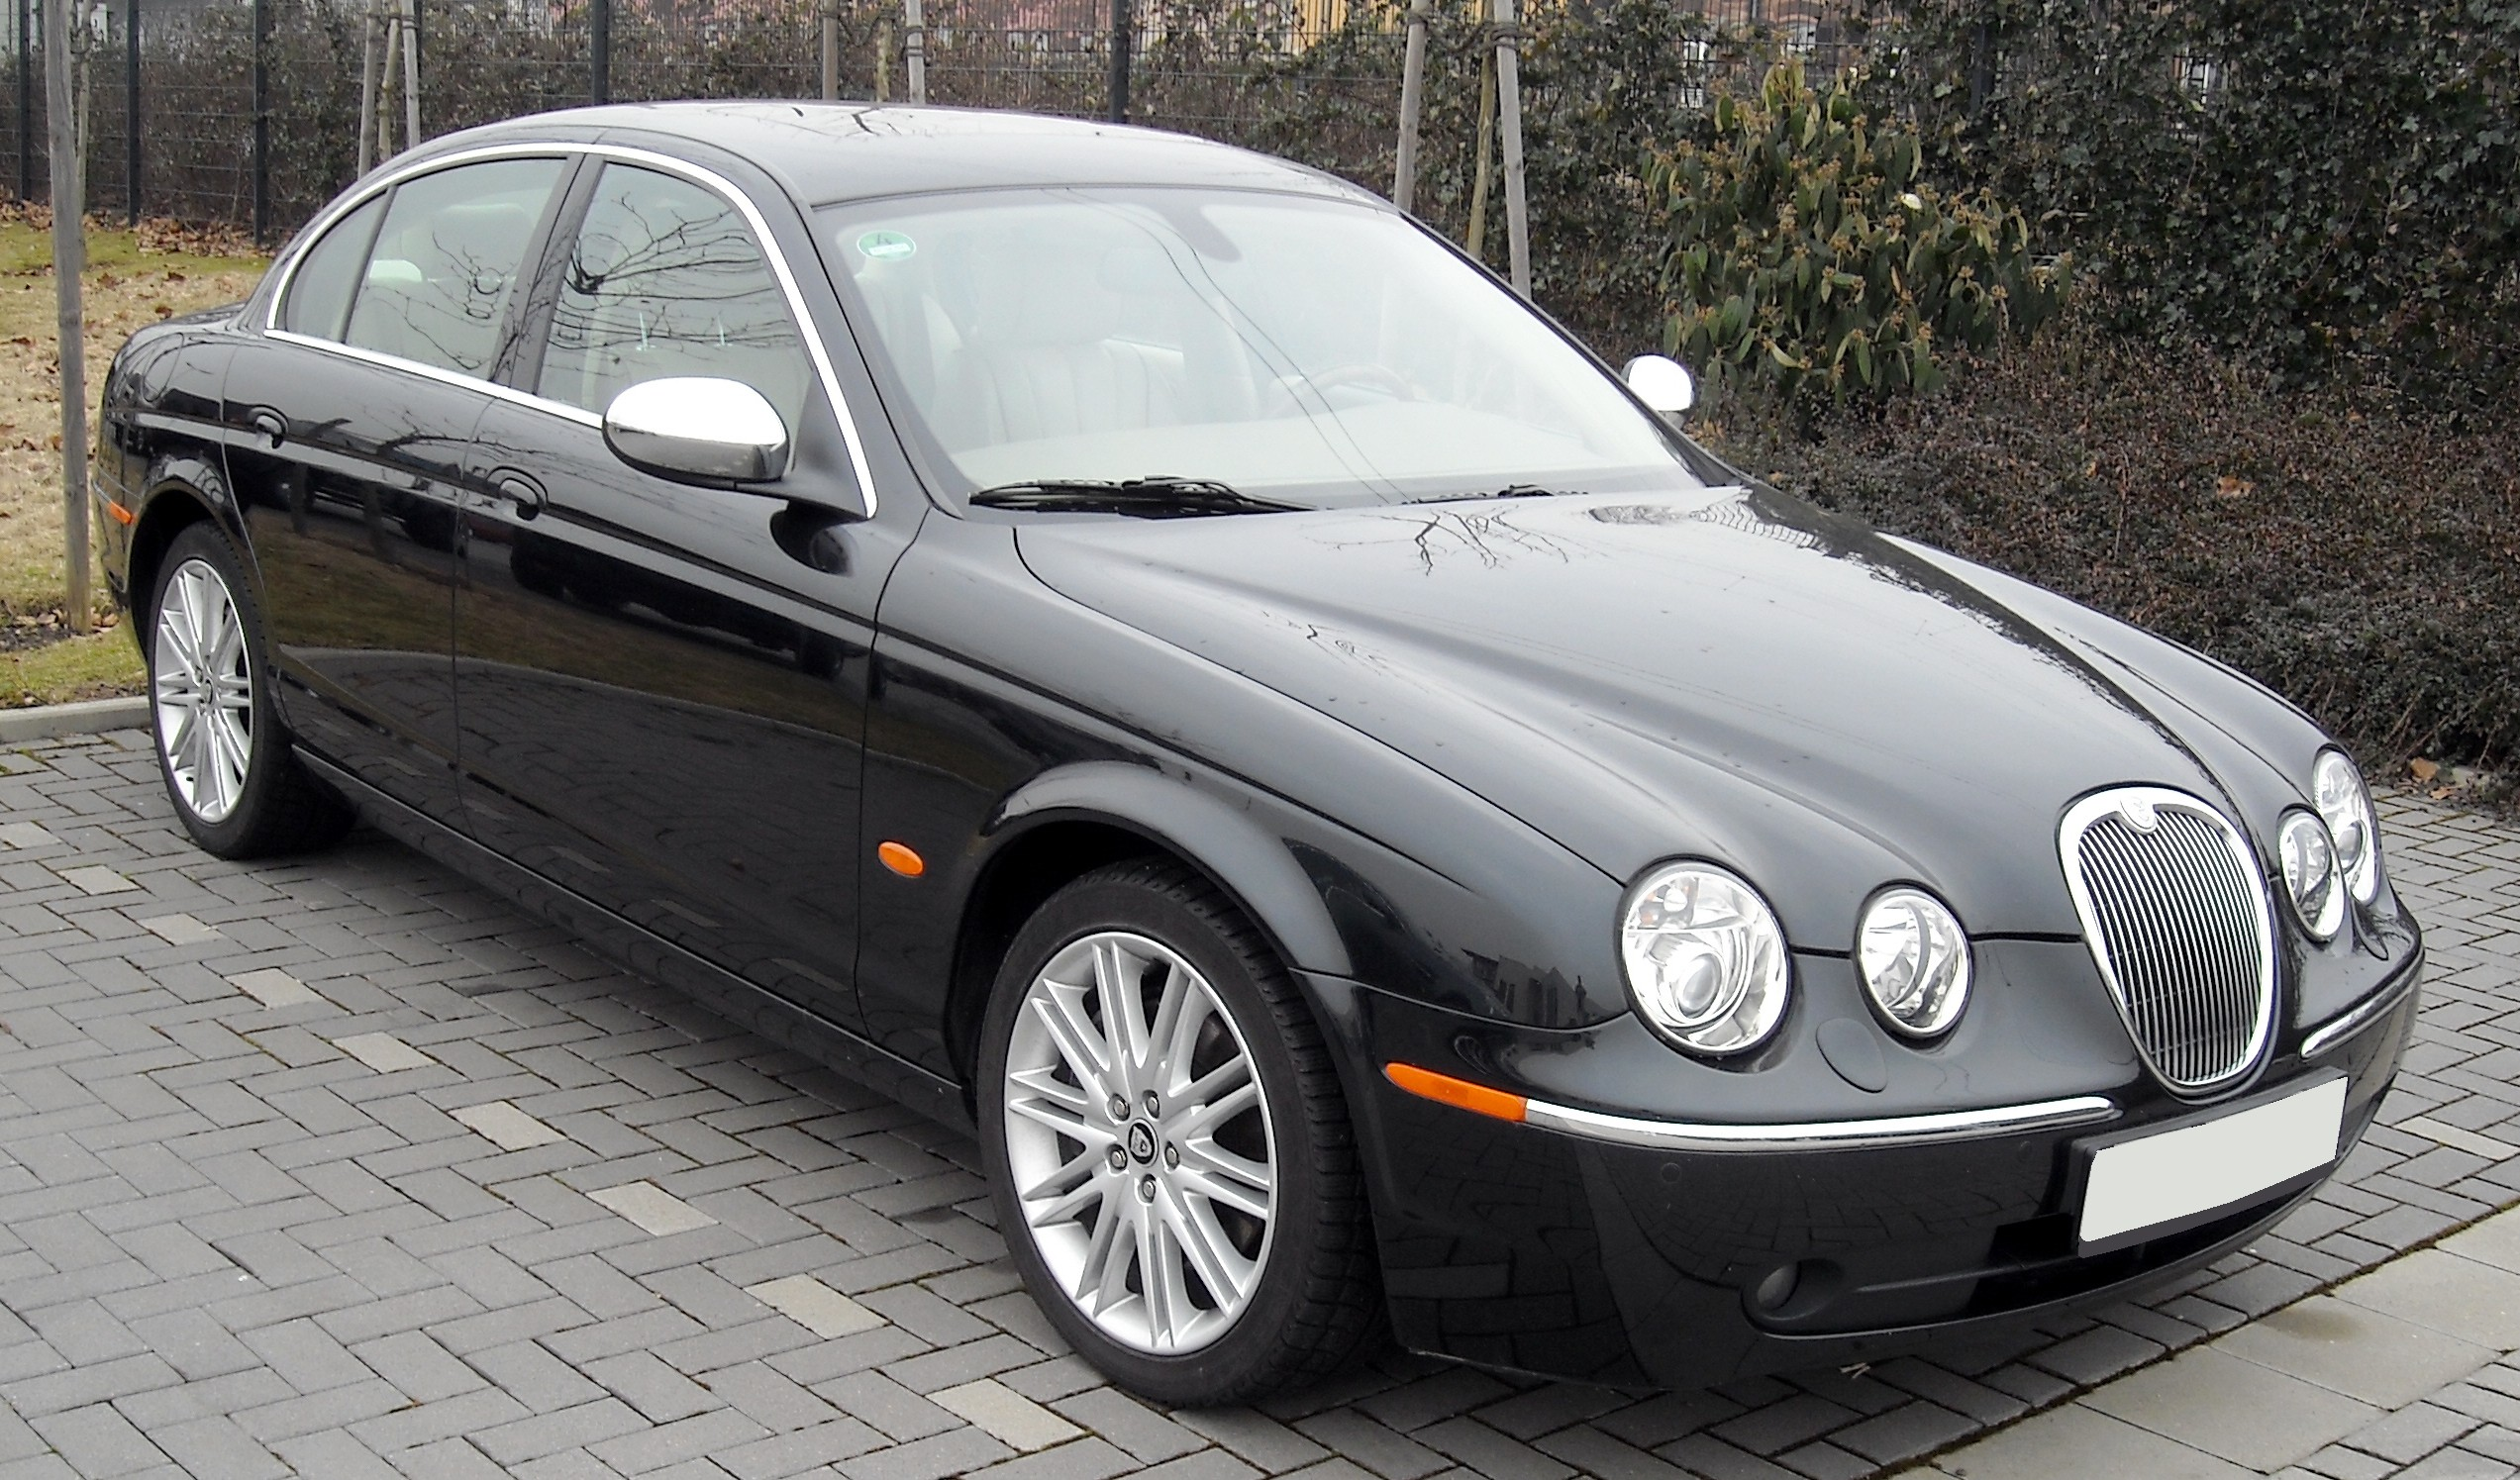 File:Jaguar S Type Front 20090128